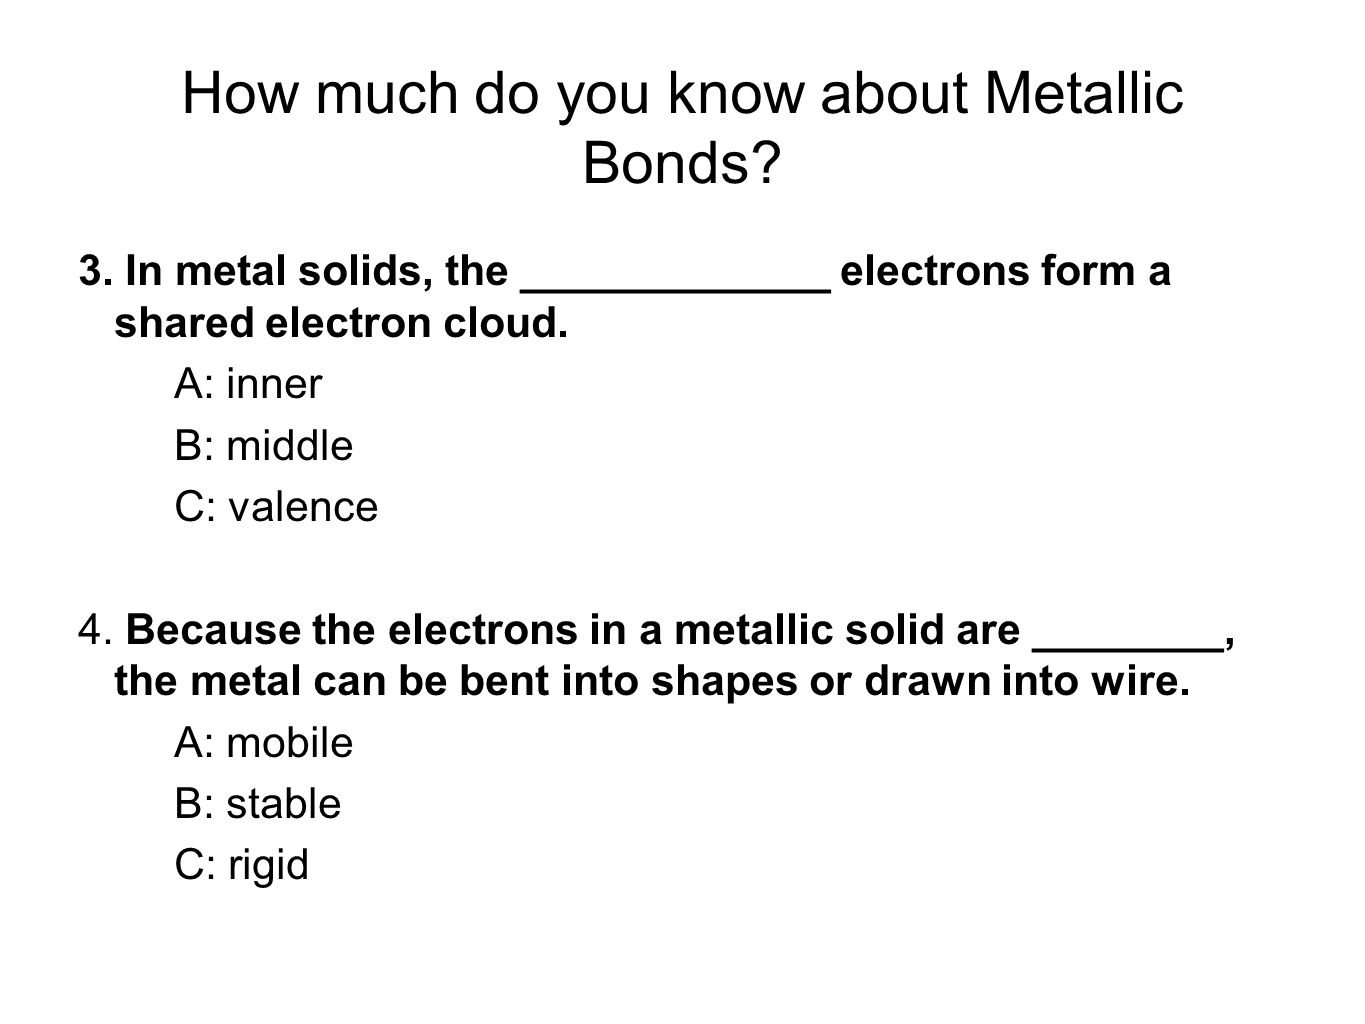 How much do you know about Metallic Bonds? 3. In metal solids, the _____________ electrons form a shared electron cloud. A: inner B: middle C: valence